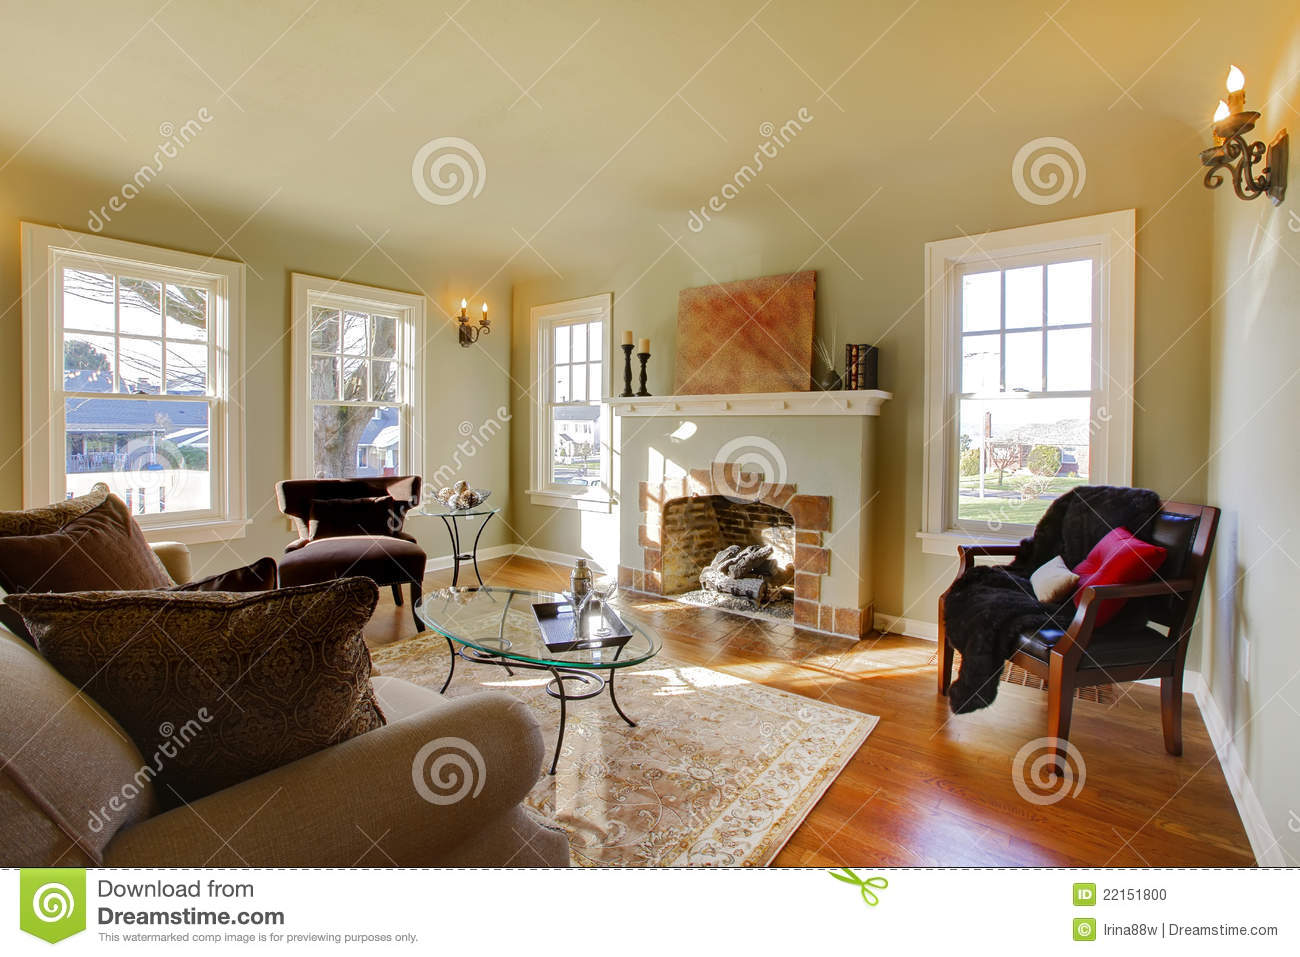 Beautiful living room with old fireplace stock photo image 22151800 - Images of beautiful living rooms ...